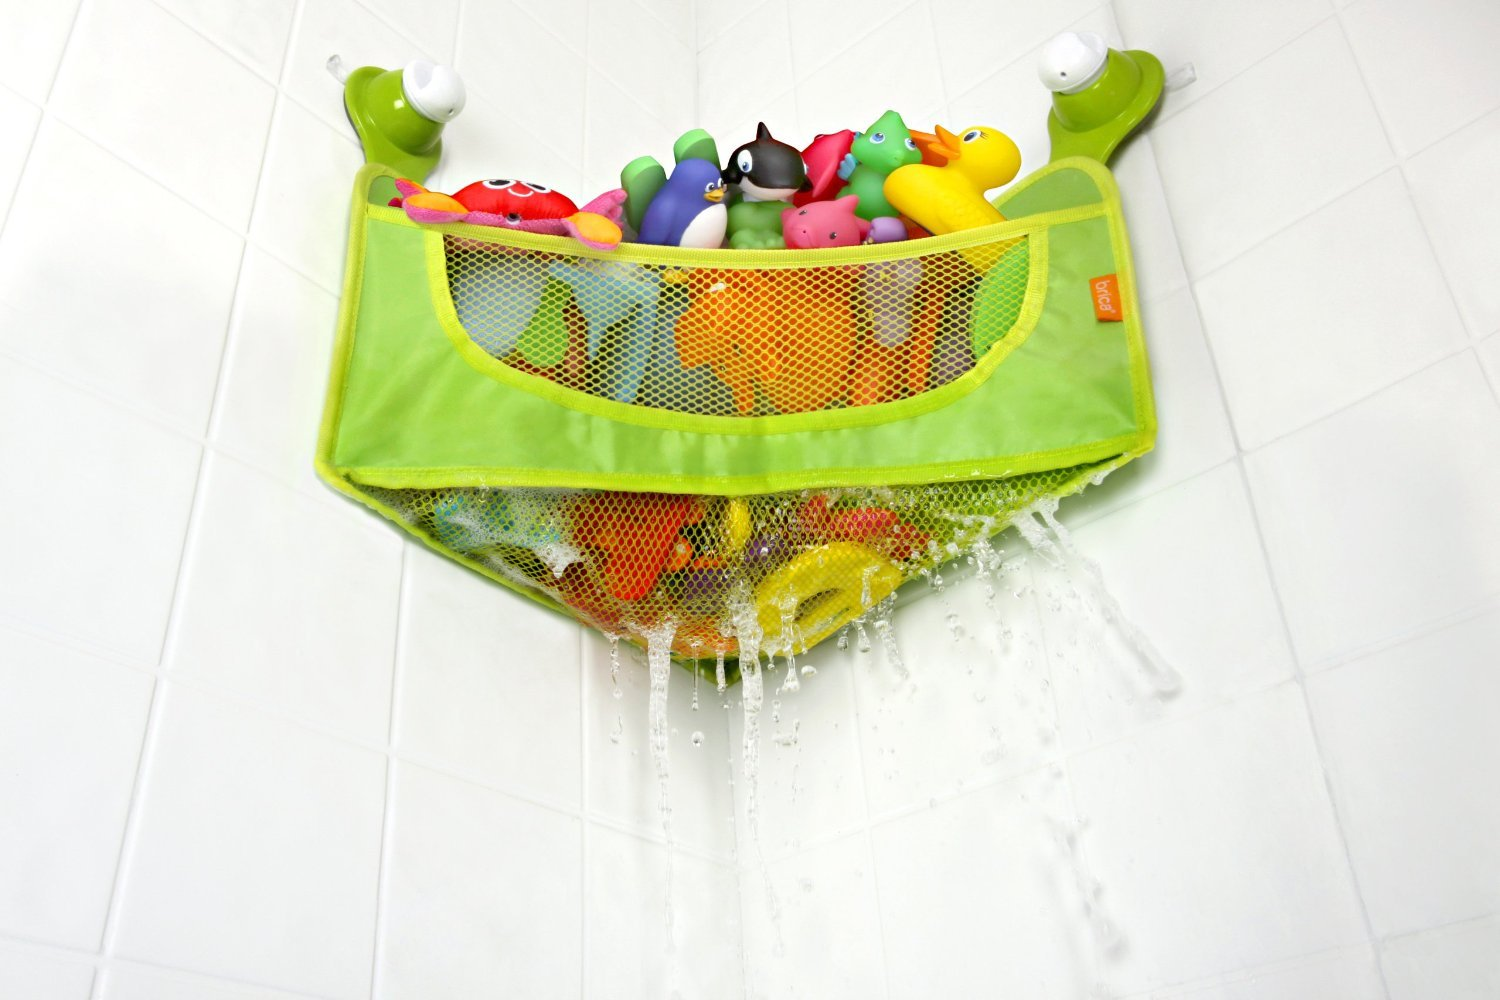 Amazon.com : BRICA Corner Bath Basket Toy Organizer + Sassy Bathtime Pals Squirt and Float Toys : Baby